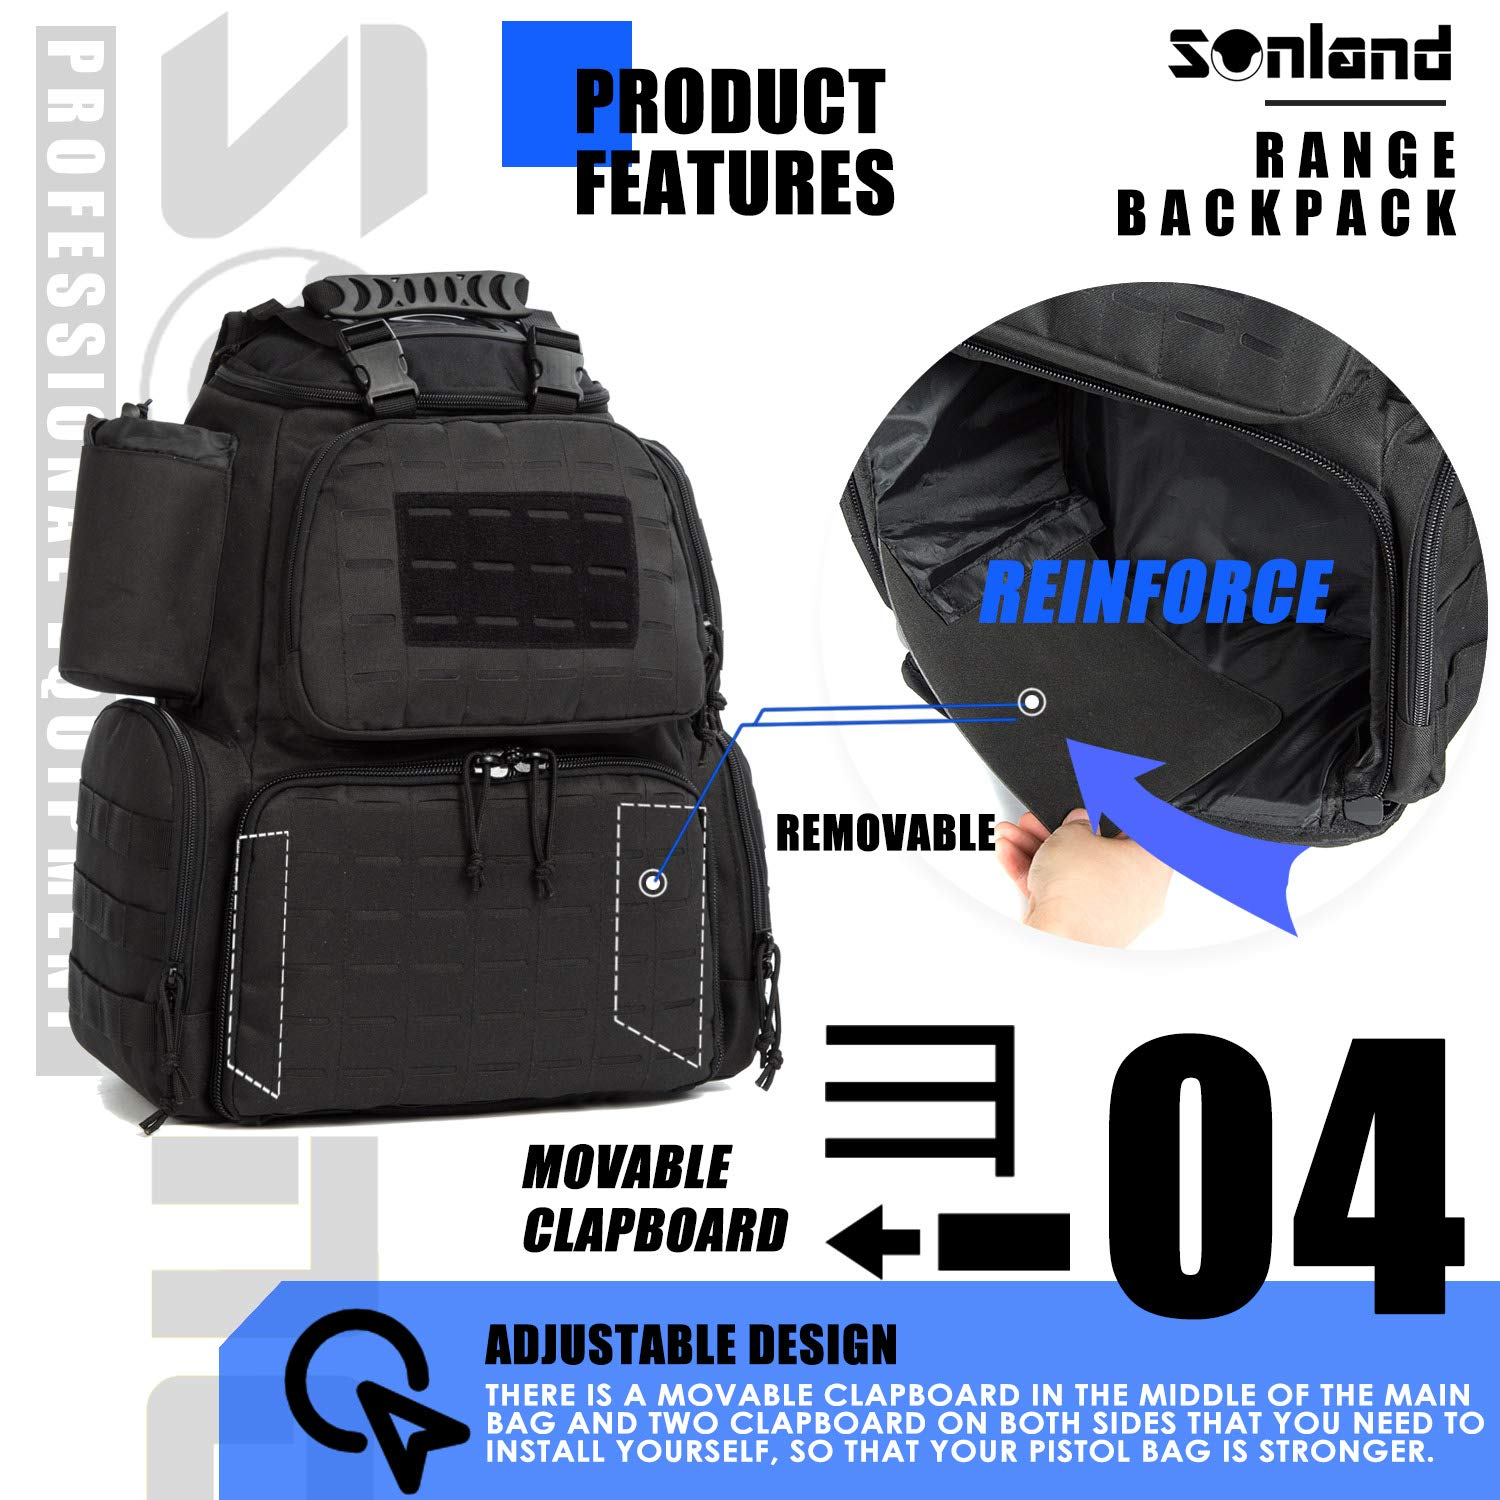 SUNLAND Range Bag Backpack,Gun Backpack with 3-Pistol Case and Protective Rain Cover,Tactical molle System & Lockable zippers-18'' x 14'' x 8'' (Blk) by SUNLAND (Image #5)